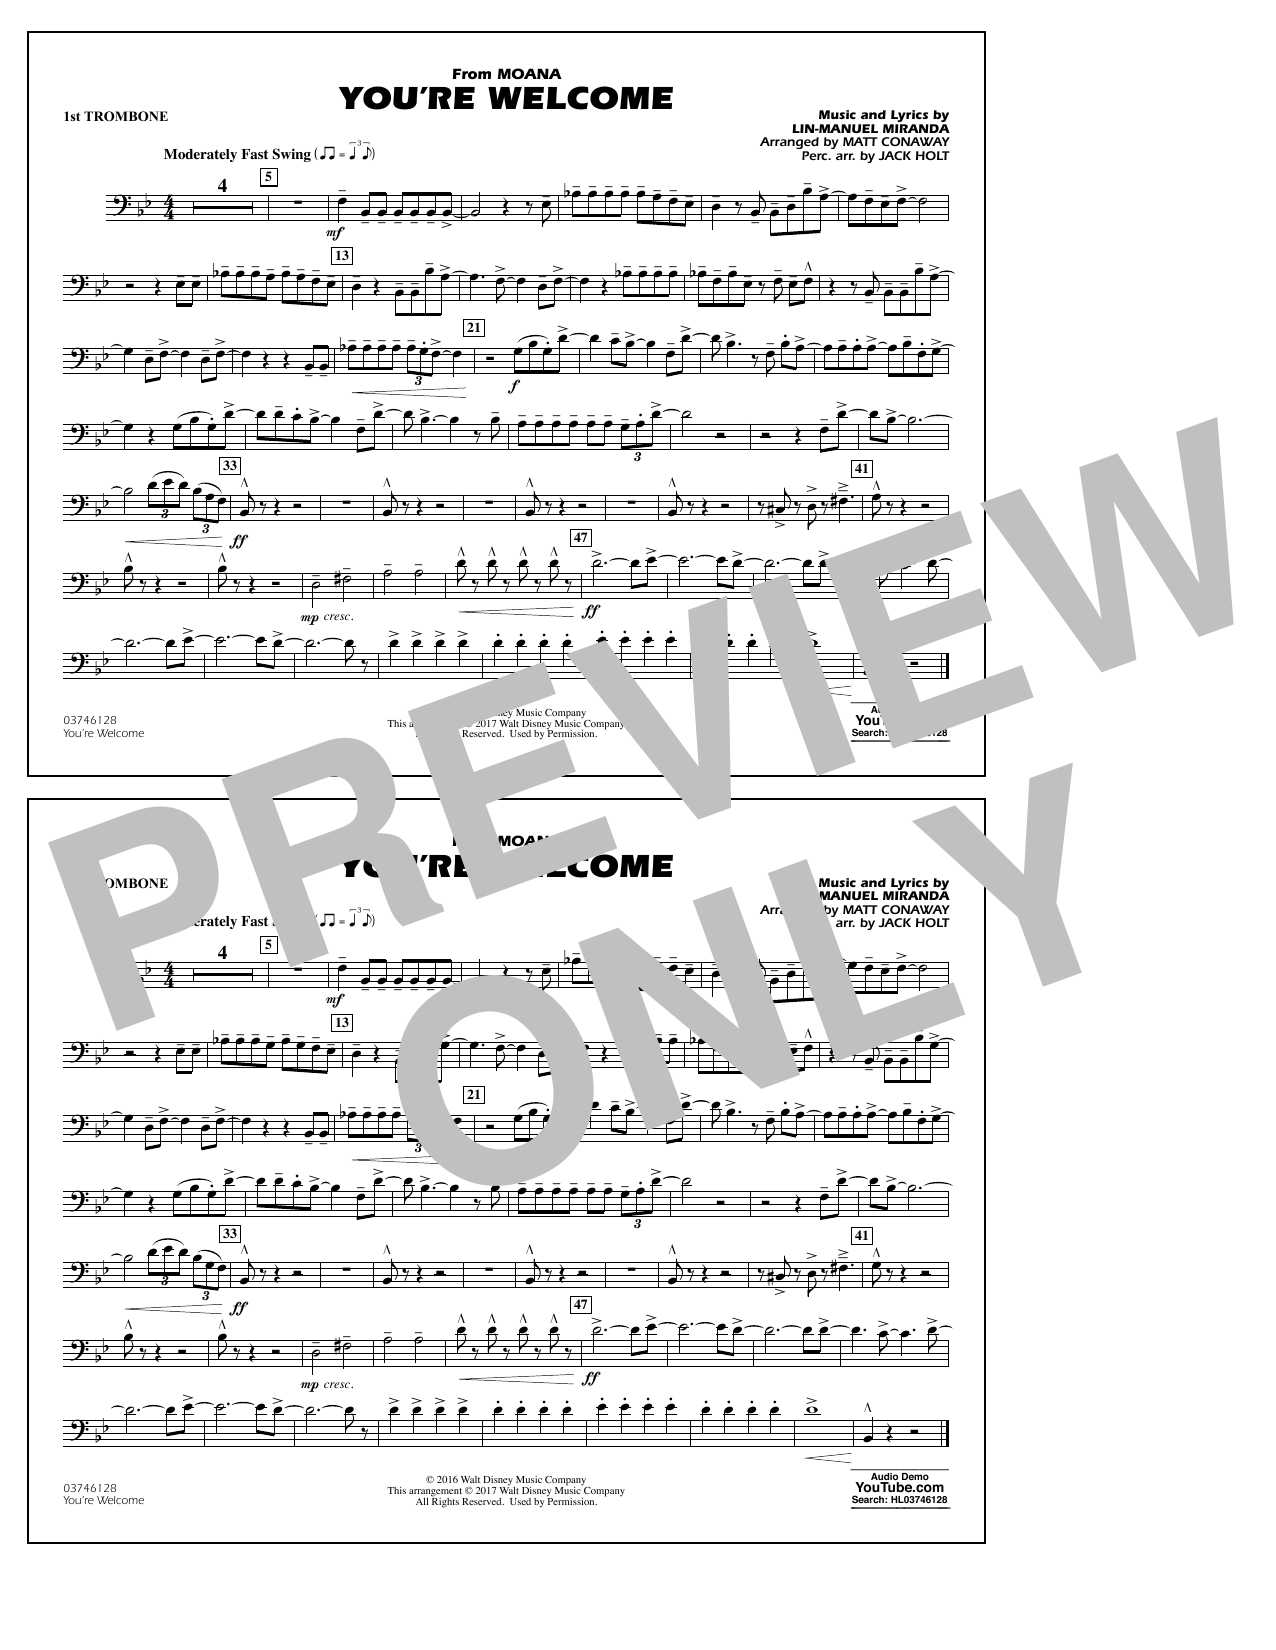 graphic regarding Free Printable Trombone Sheet Music referred to as Youre Welcome (towards Moana) - 1st Trombone atStantons Sheet